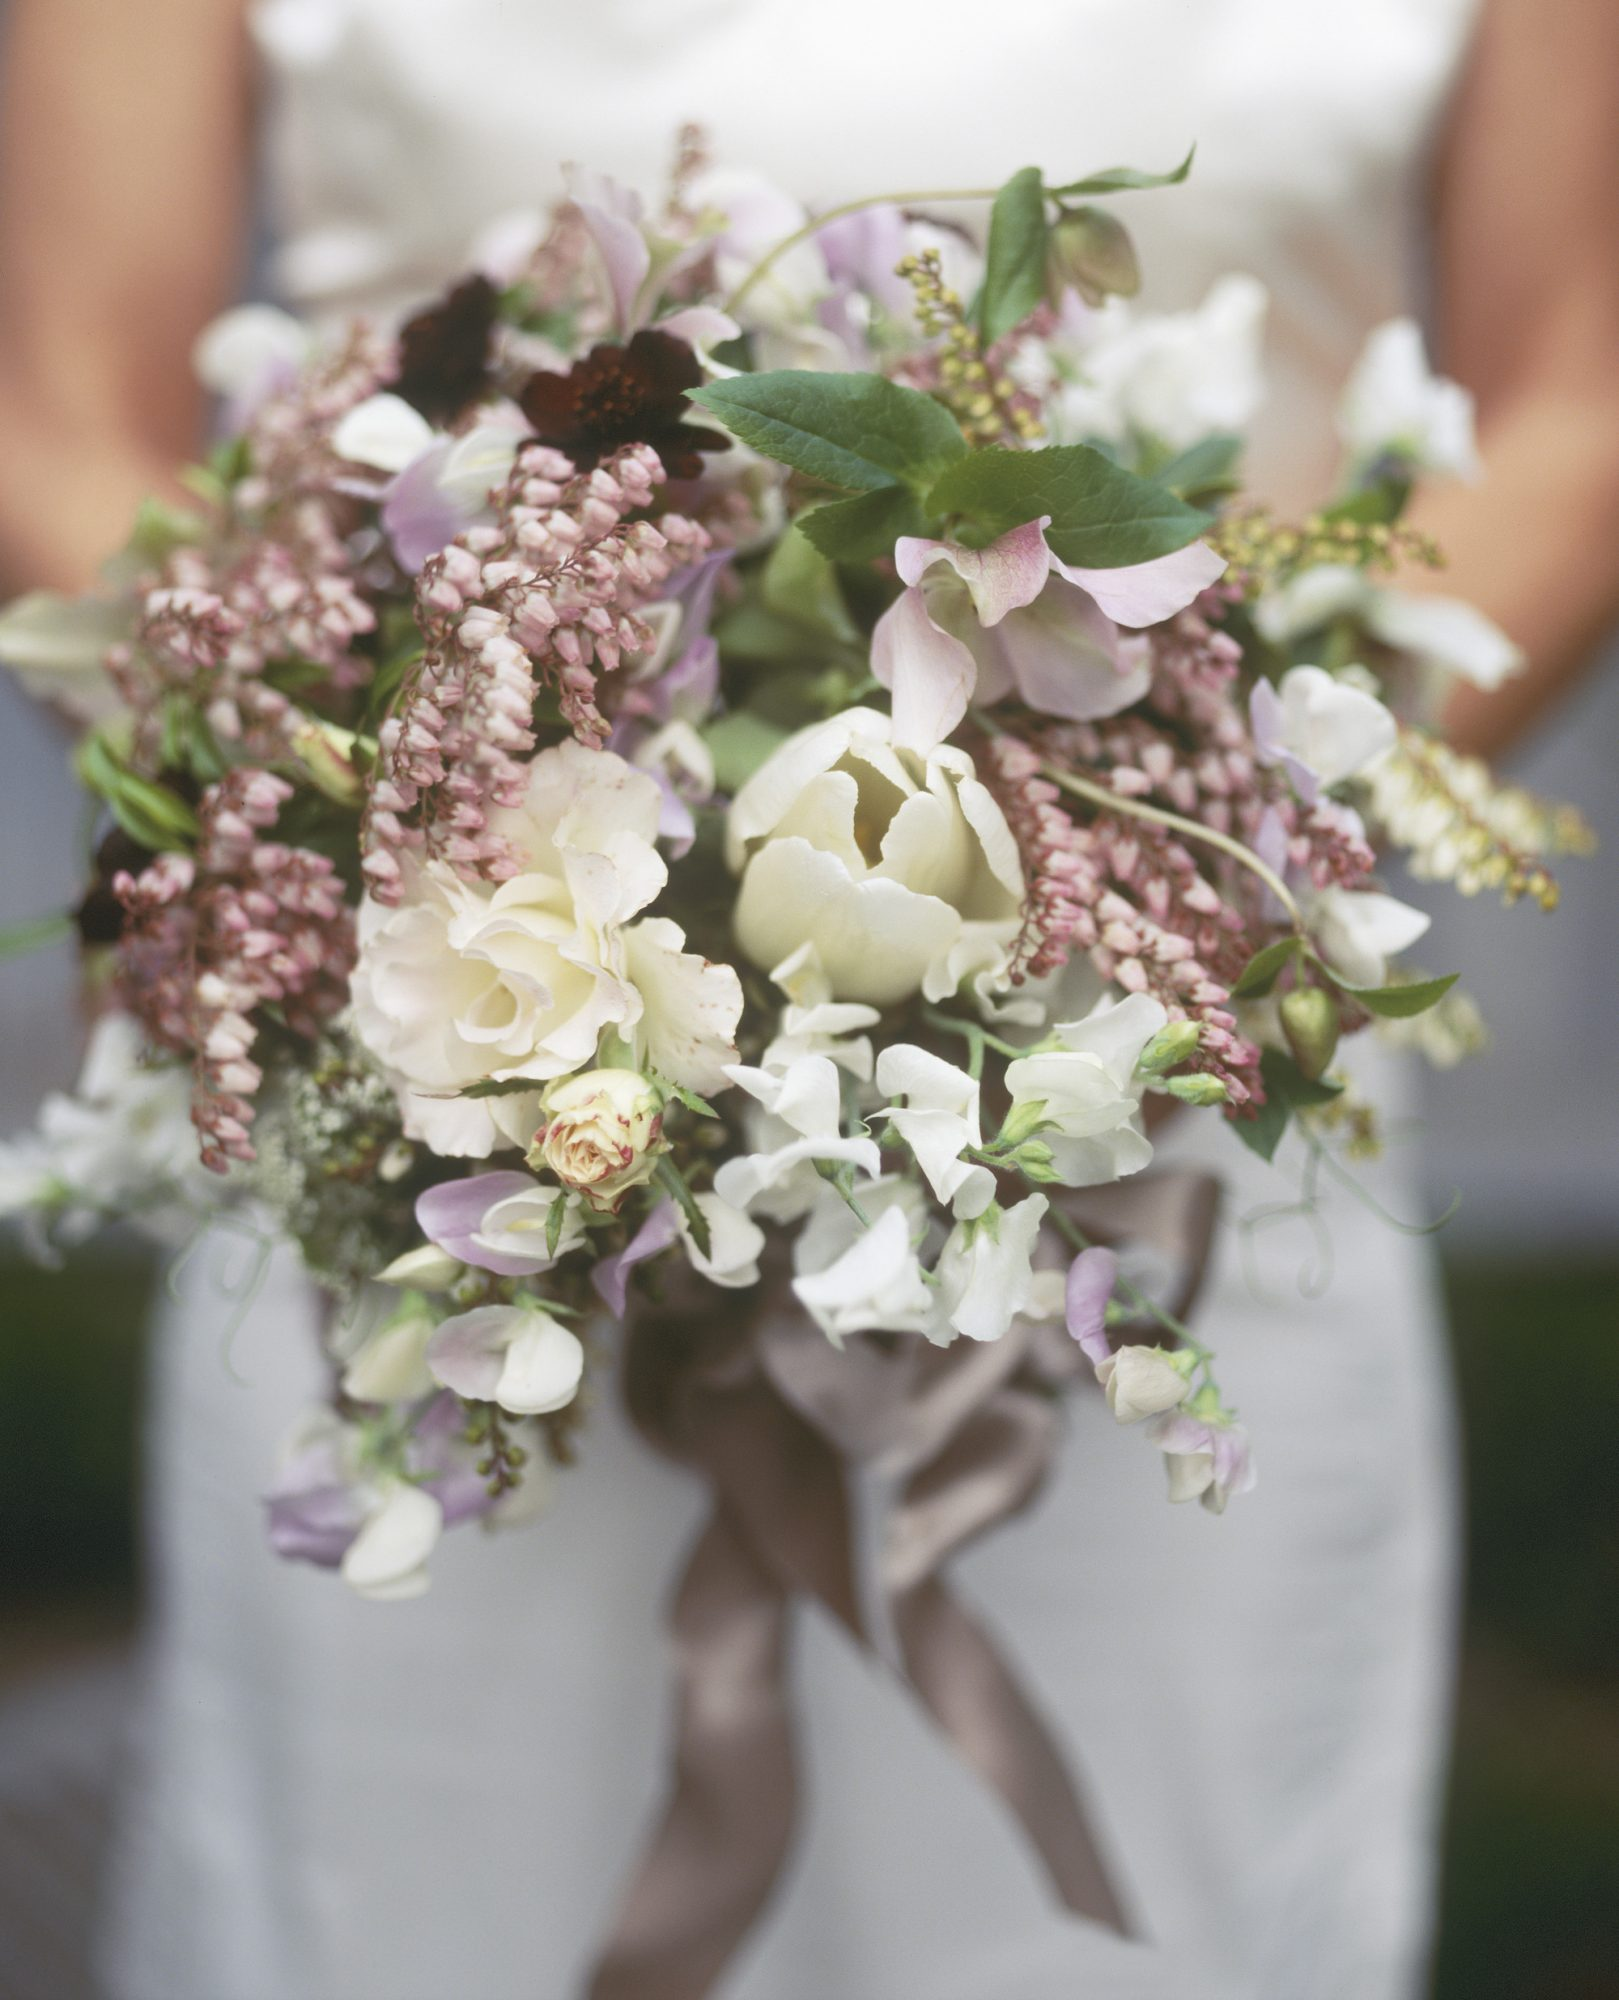 choose purple tulip wedding bouquets for your wedding 9 - Choose Purple tulip wedding bouquets for Your Wedding